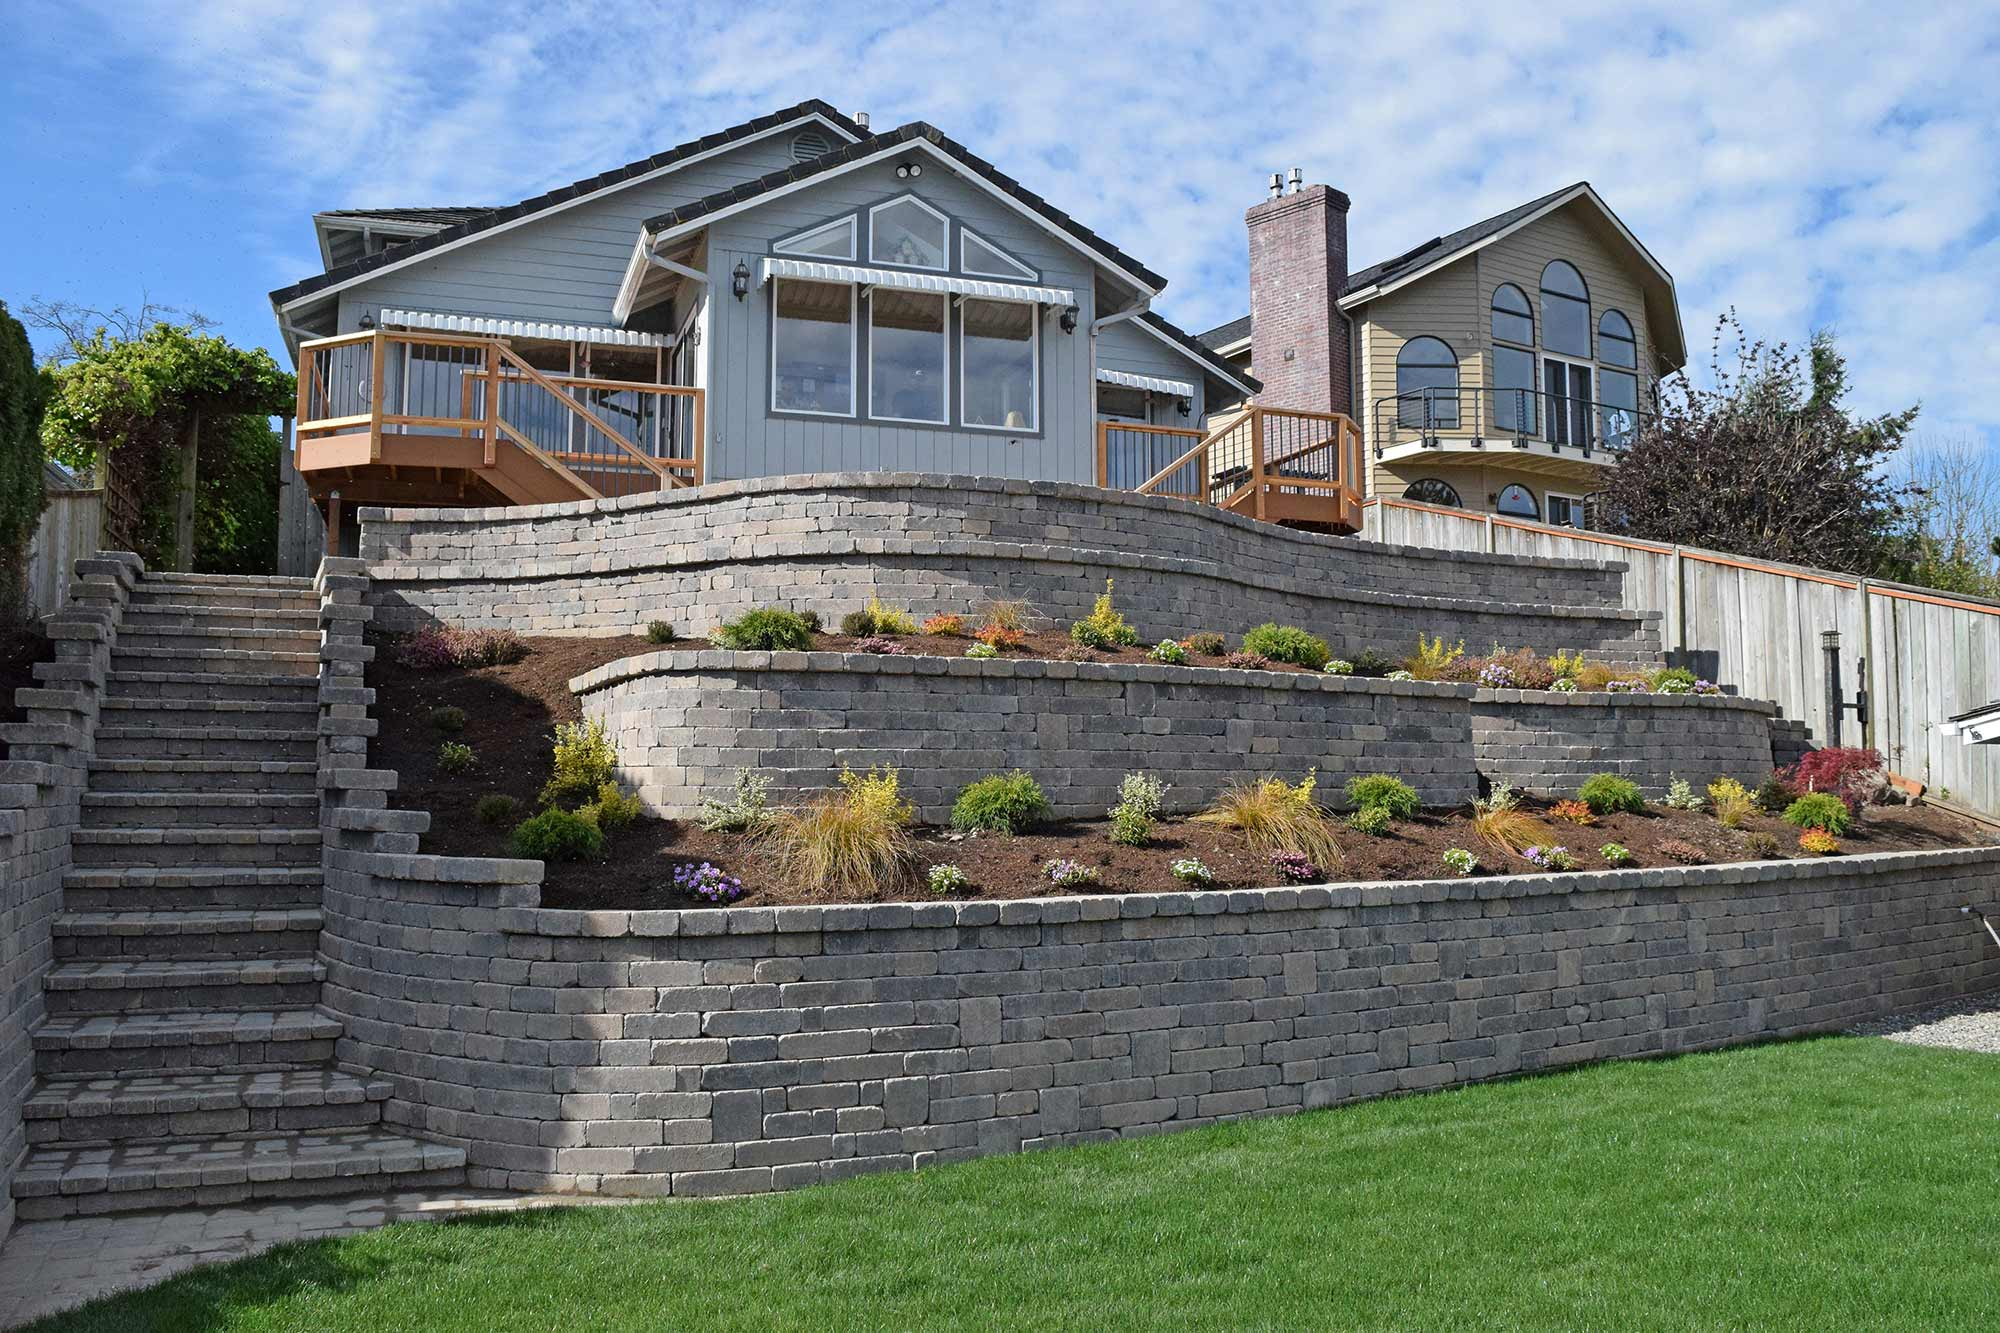 This Massive, 4 Tier Retaining Wall Includes An Integrated Stairway,  Landscaping And A Paver Patio Above The Top Tier.